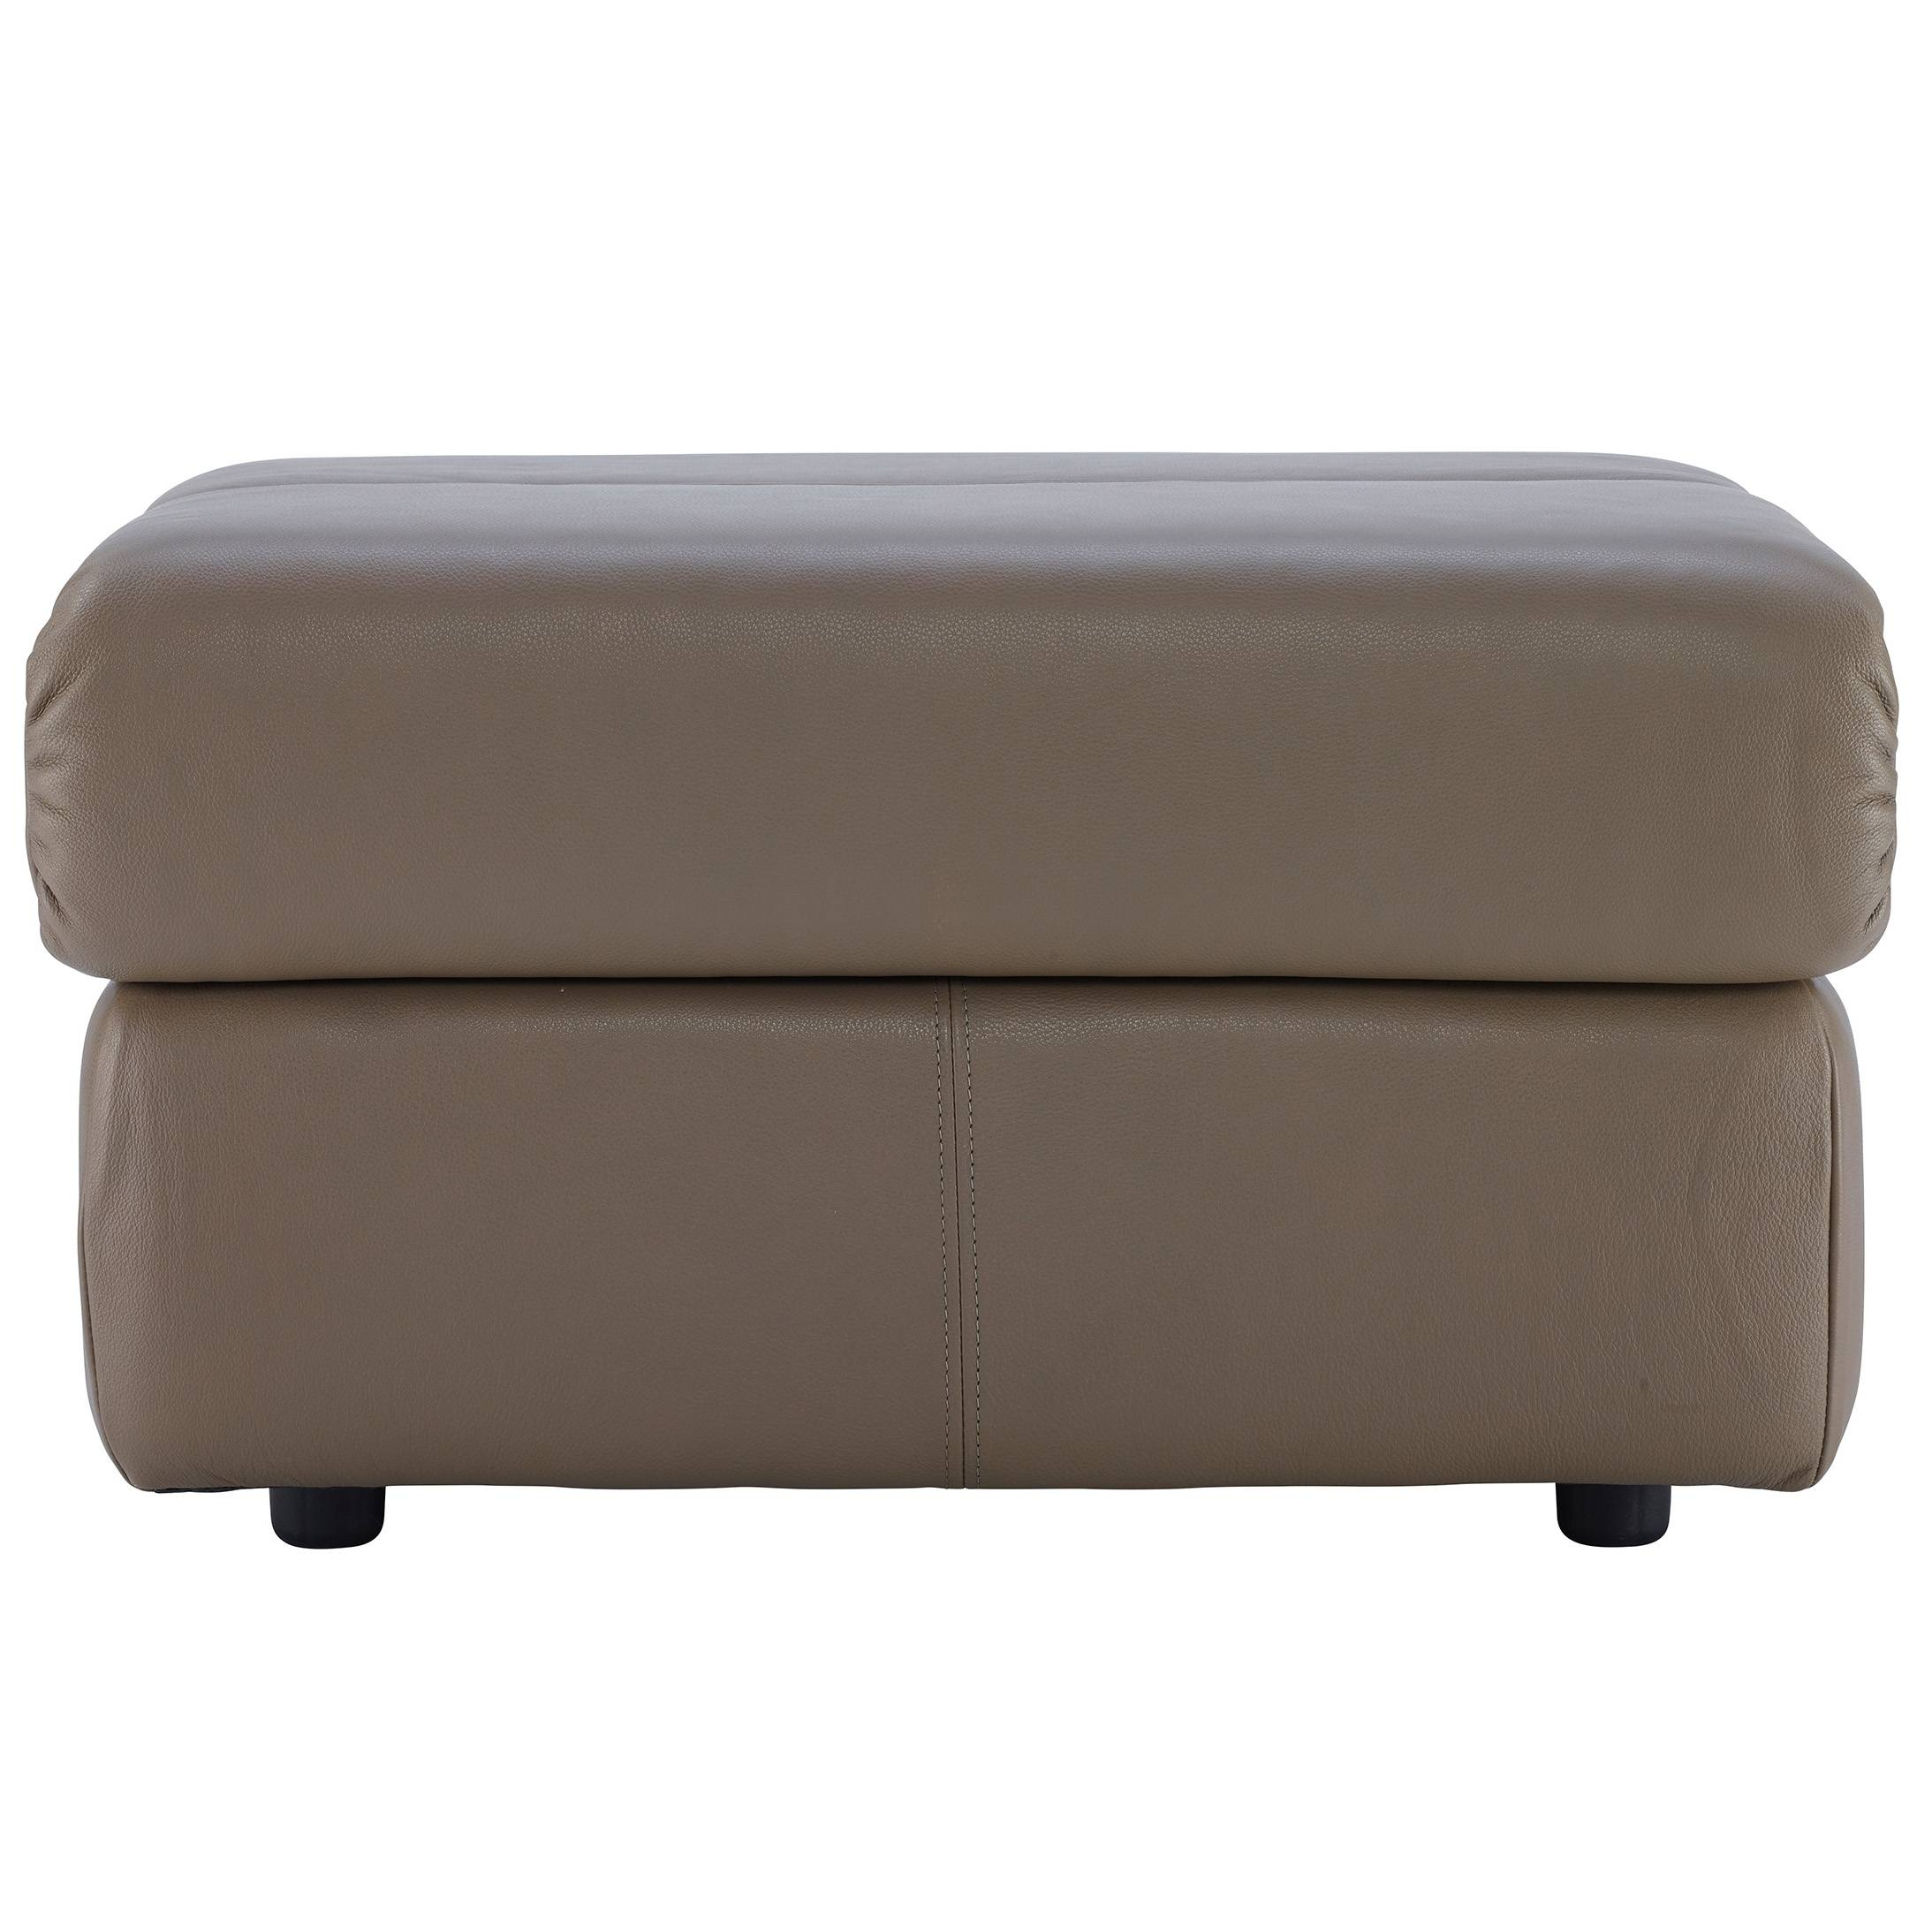 Leather Footstools - Sterling Furniture within Leather Footstools (Image 18 of 30)